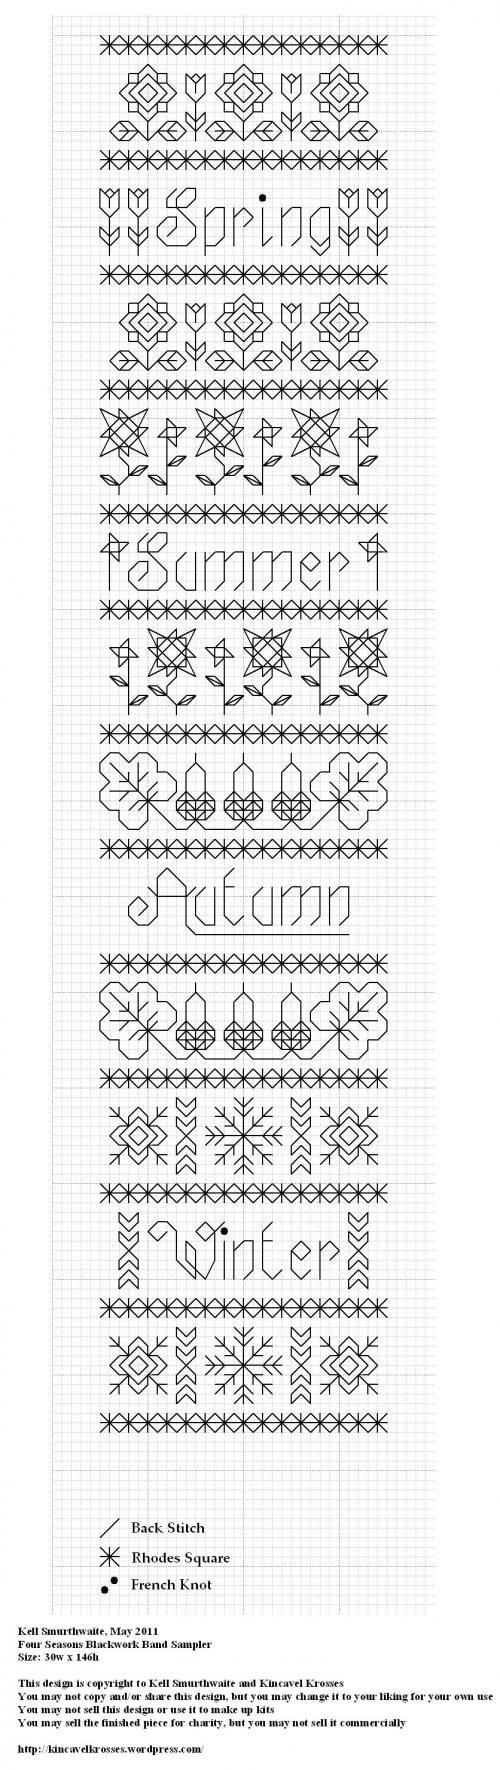 Four Seasons Blackwork Sampler